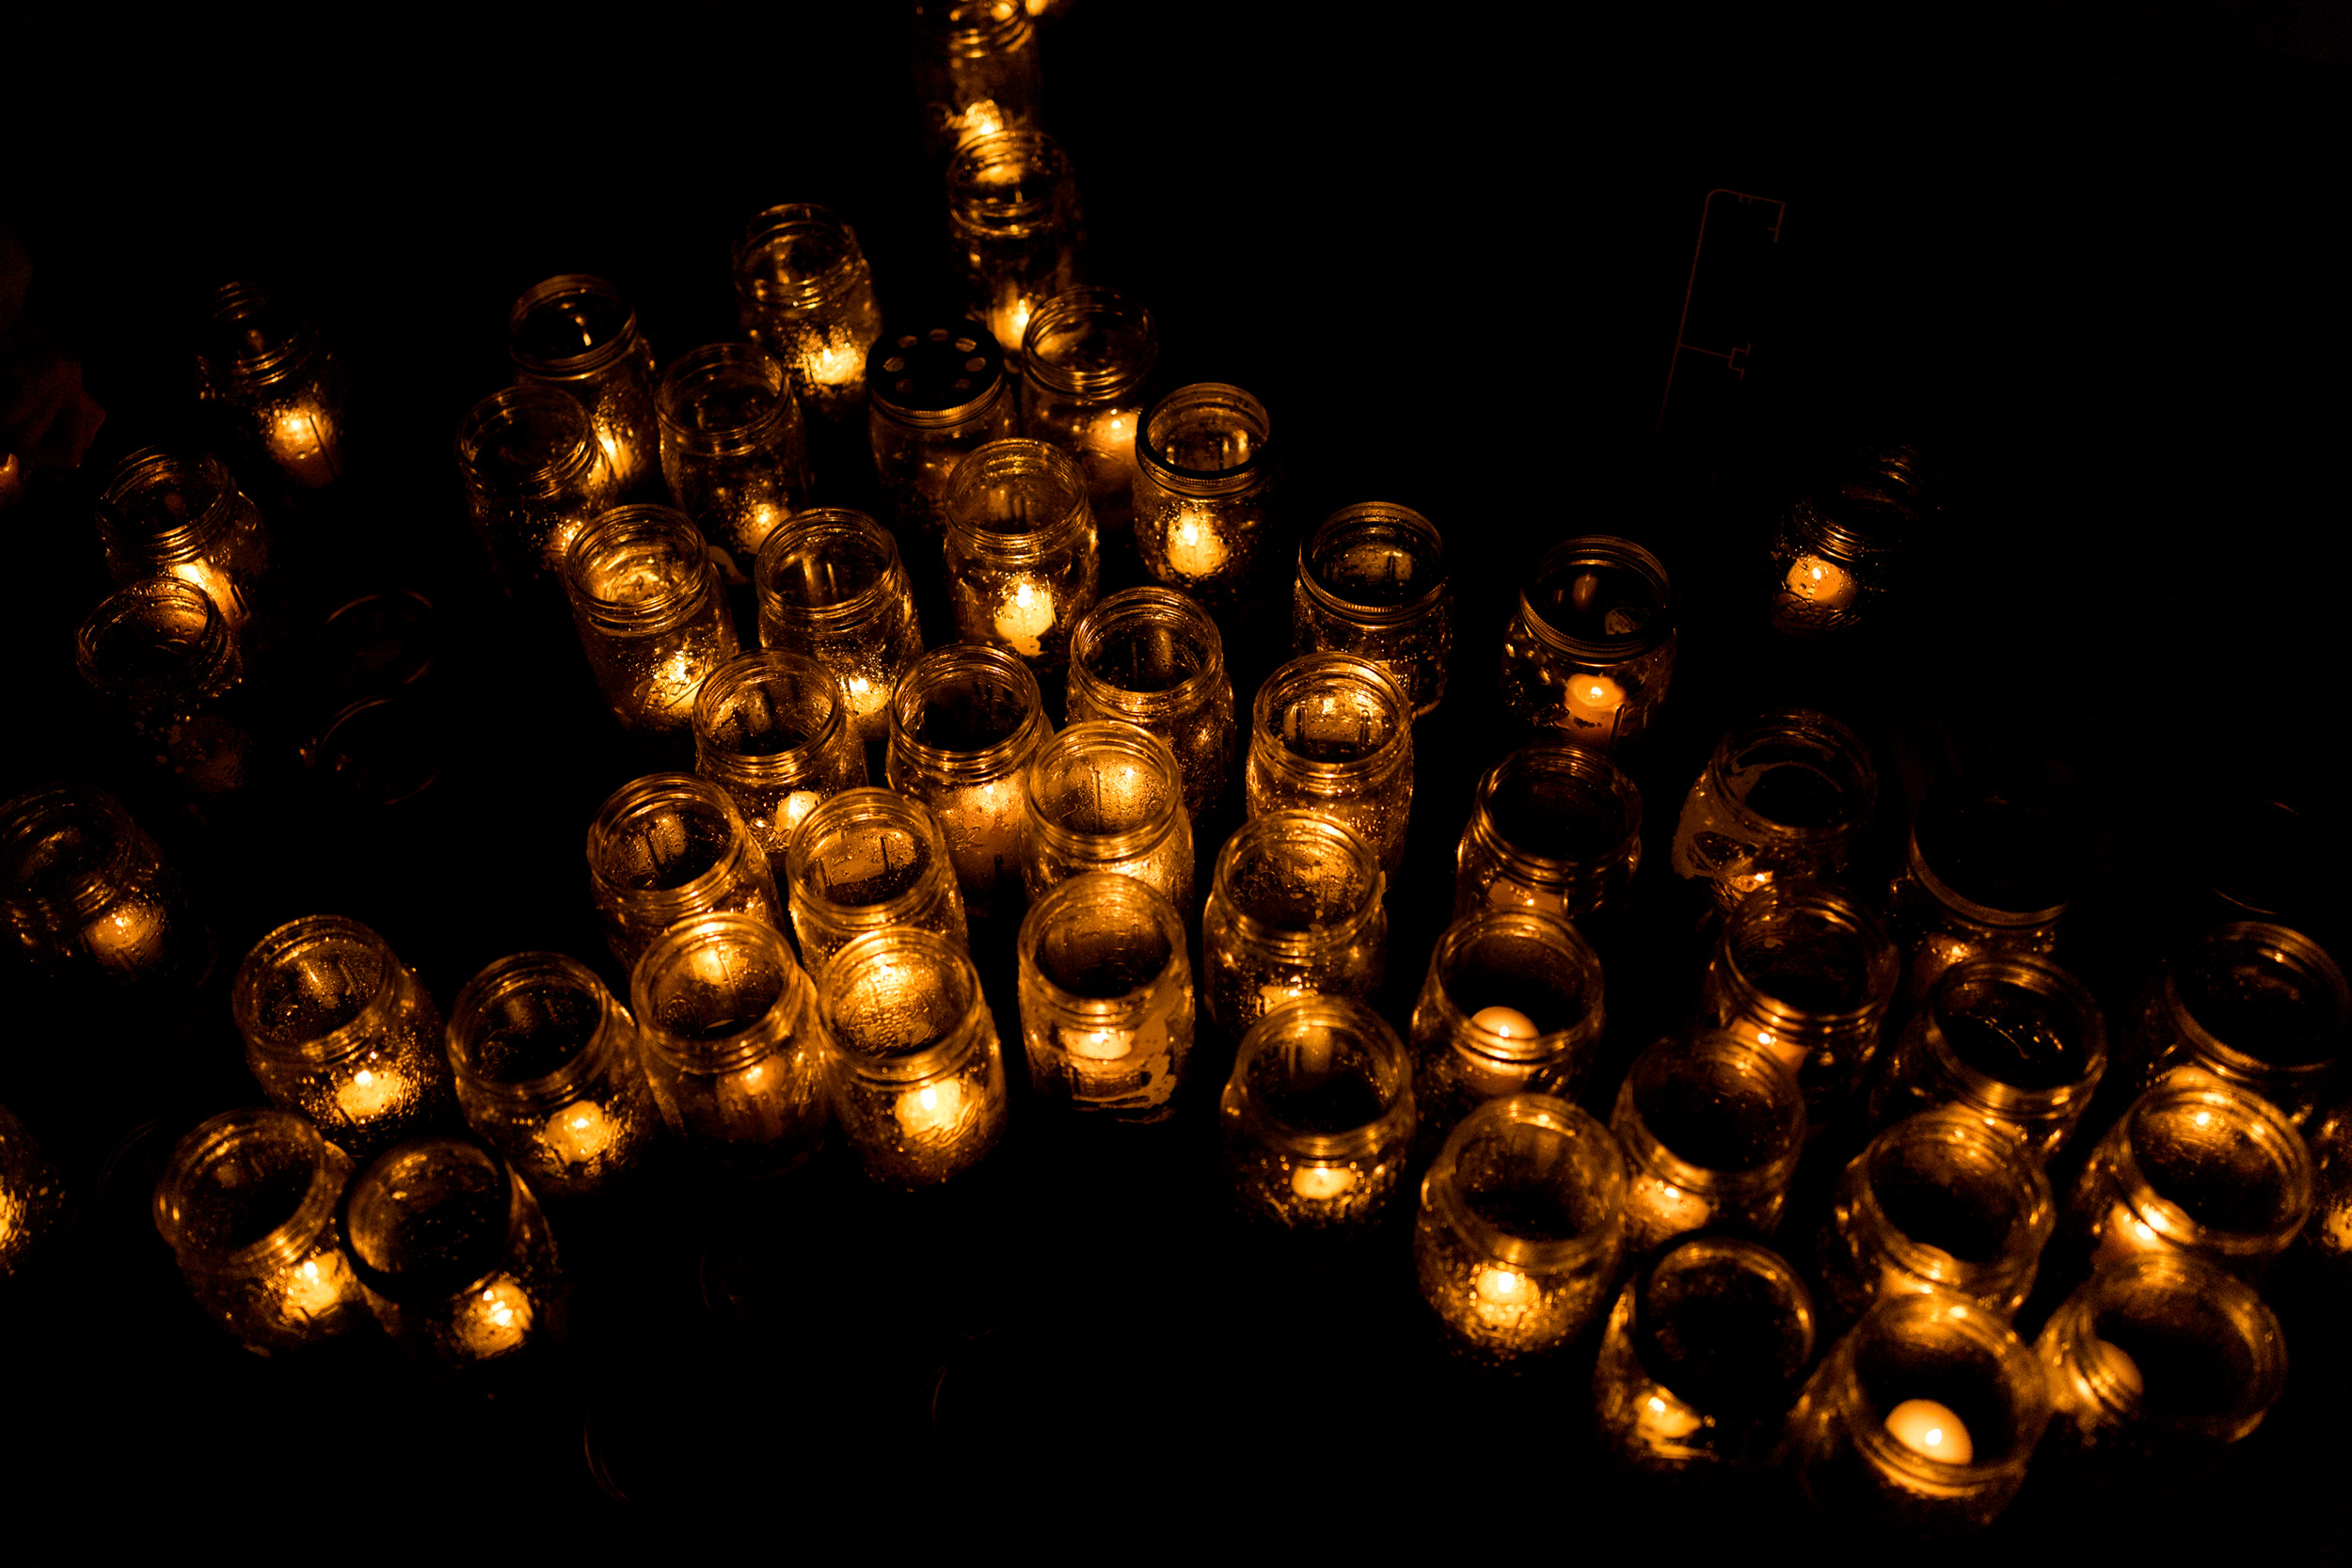 many glass jars lit by candles